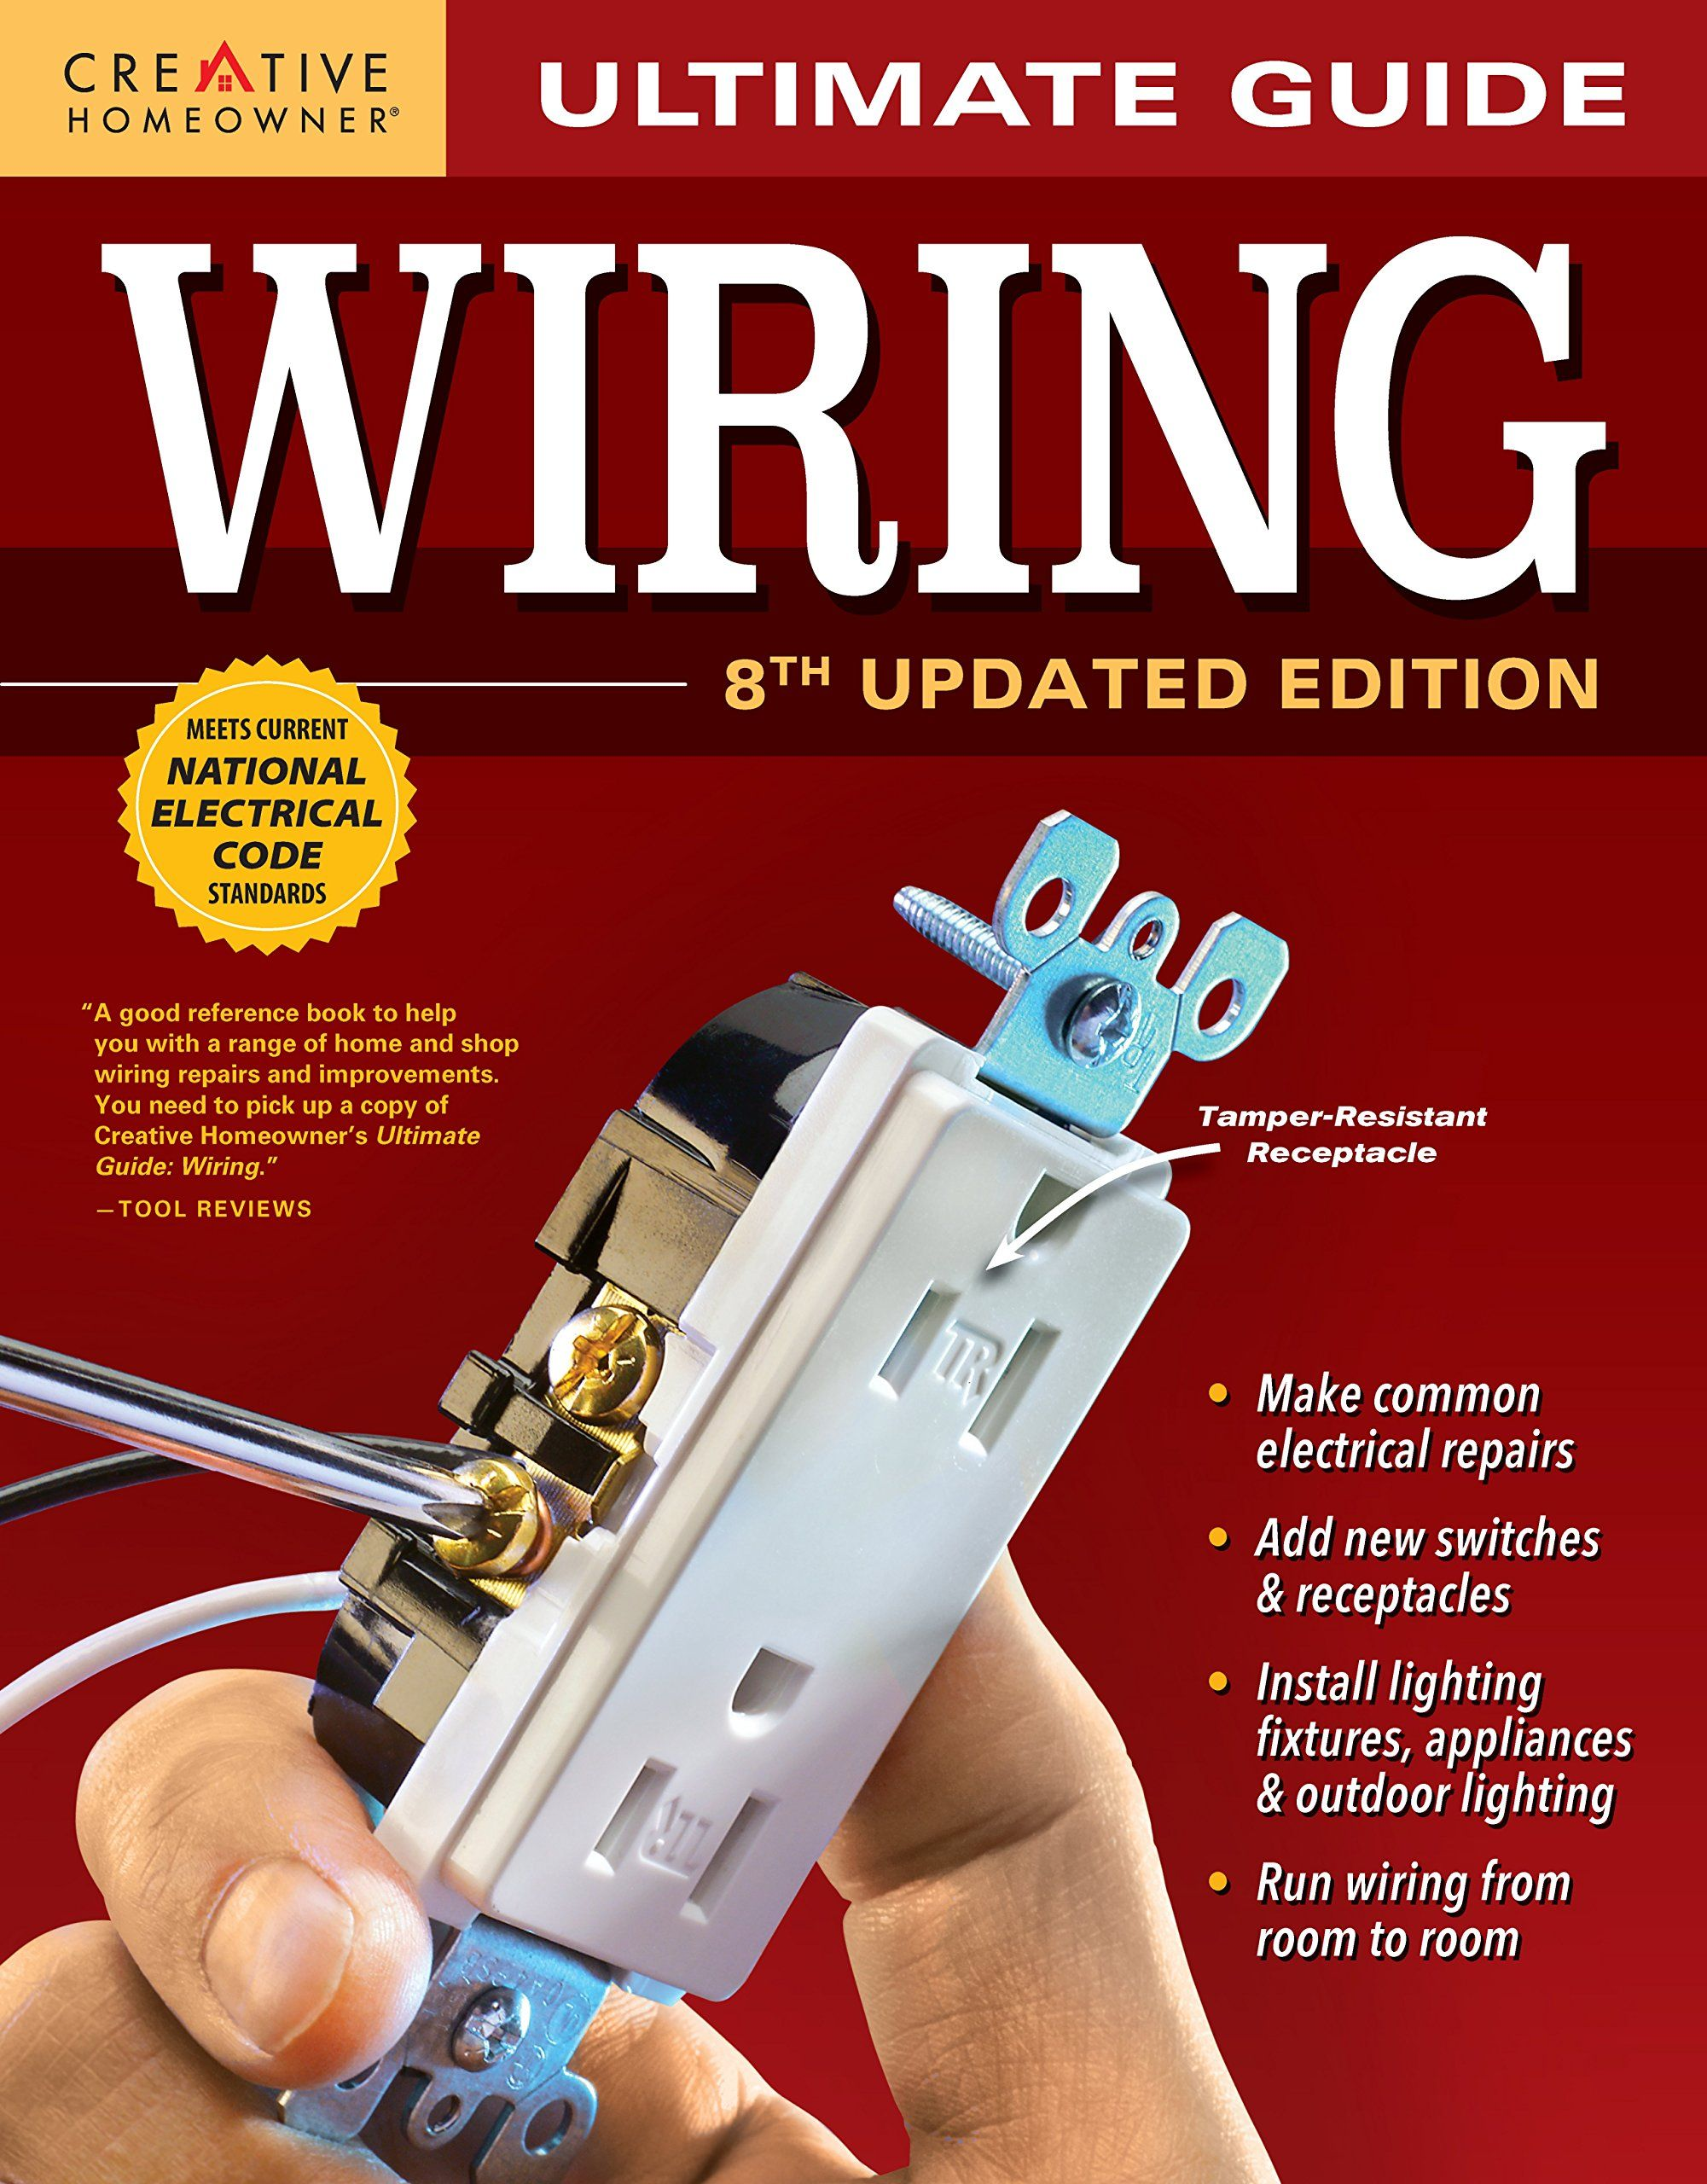 Ultimate Guide Wiring 8th Updated Edition Creative Homeowner Diy Home Electrical Ins In 2021 Home Electrical Wiring Electrical Installation Indoor Outdoor Lighting